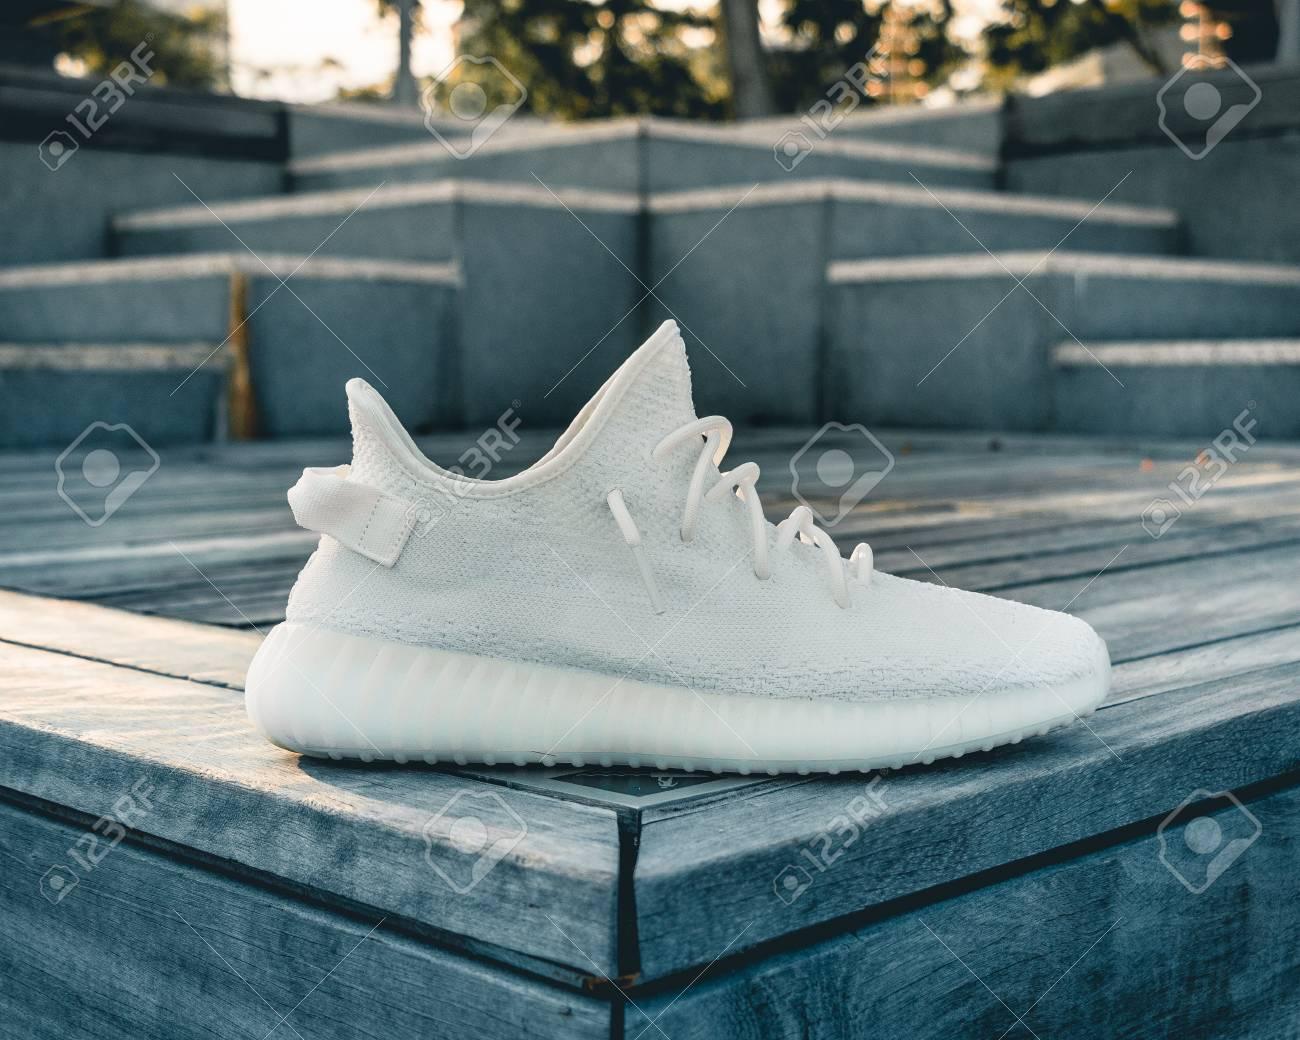 new styles 26997 82594 Yeezy boost 350 v2 cream white